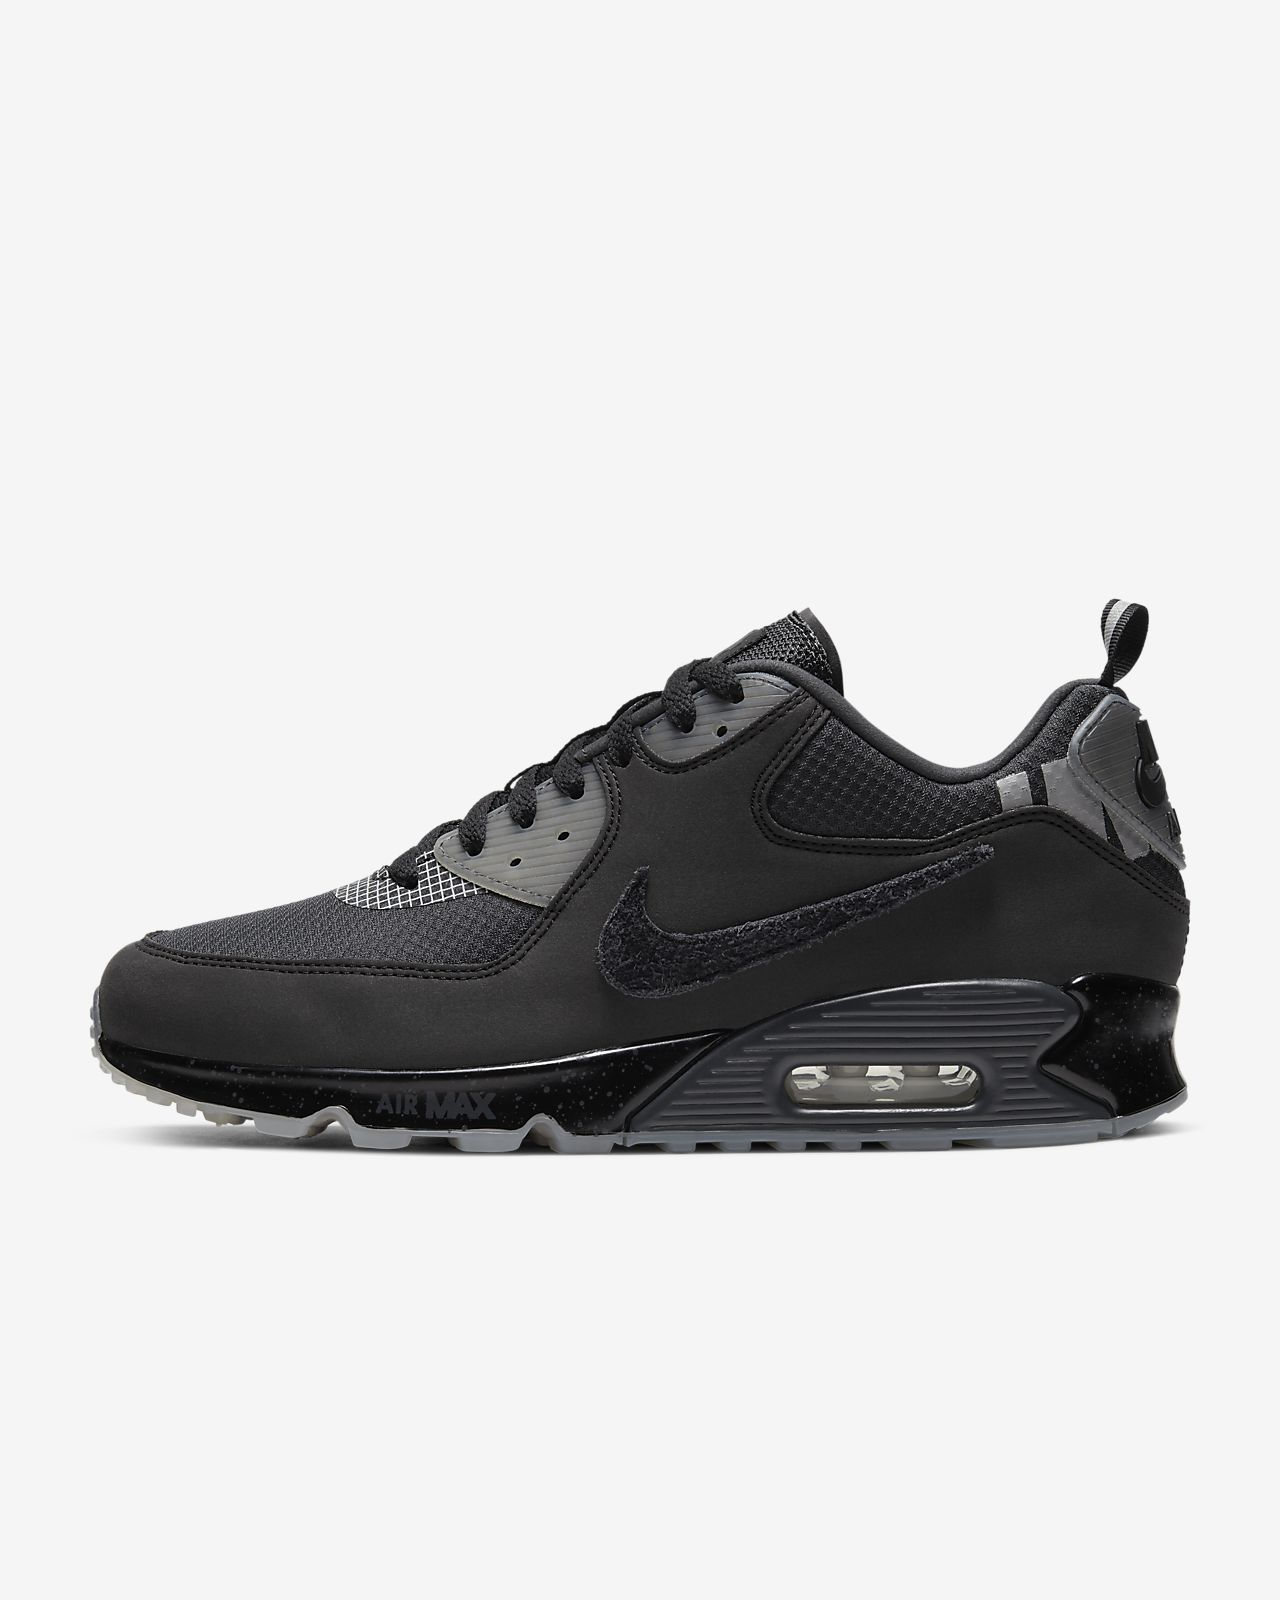 Nike x Undefeated Air Max 90 鞋款